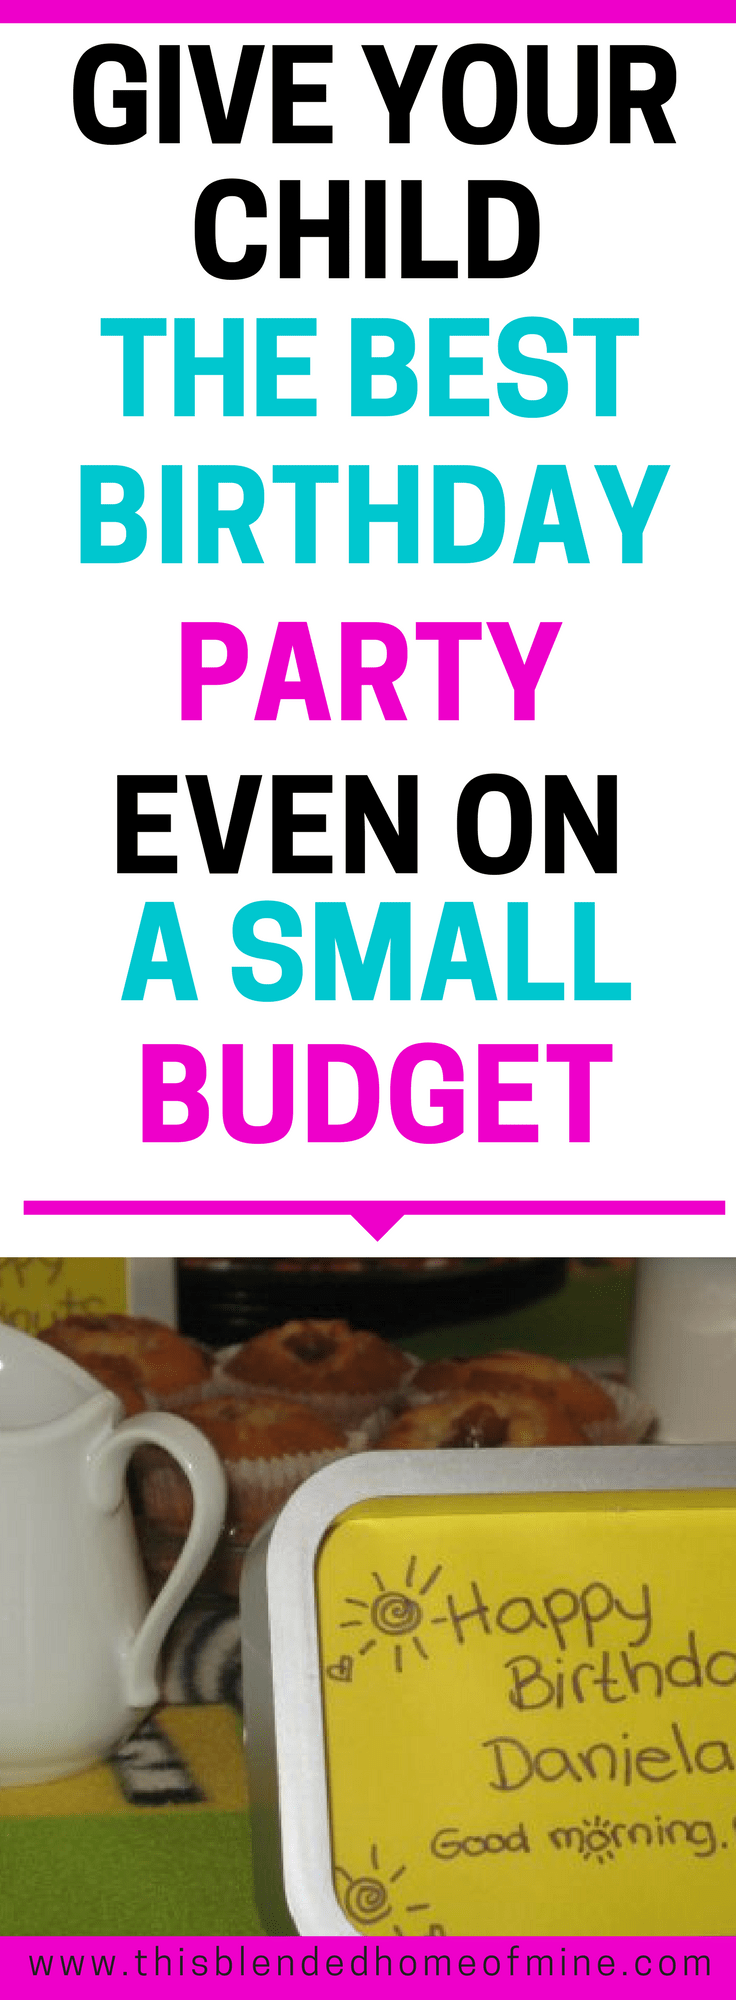 DIY Children's Birthday Party on a Budget - This Blended Home of Mine - DIY Birthday Party Games, Activities